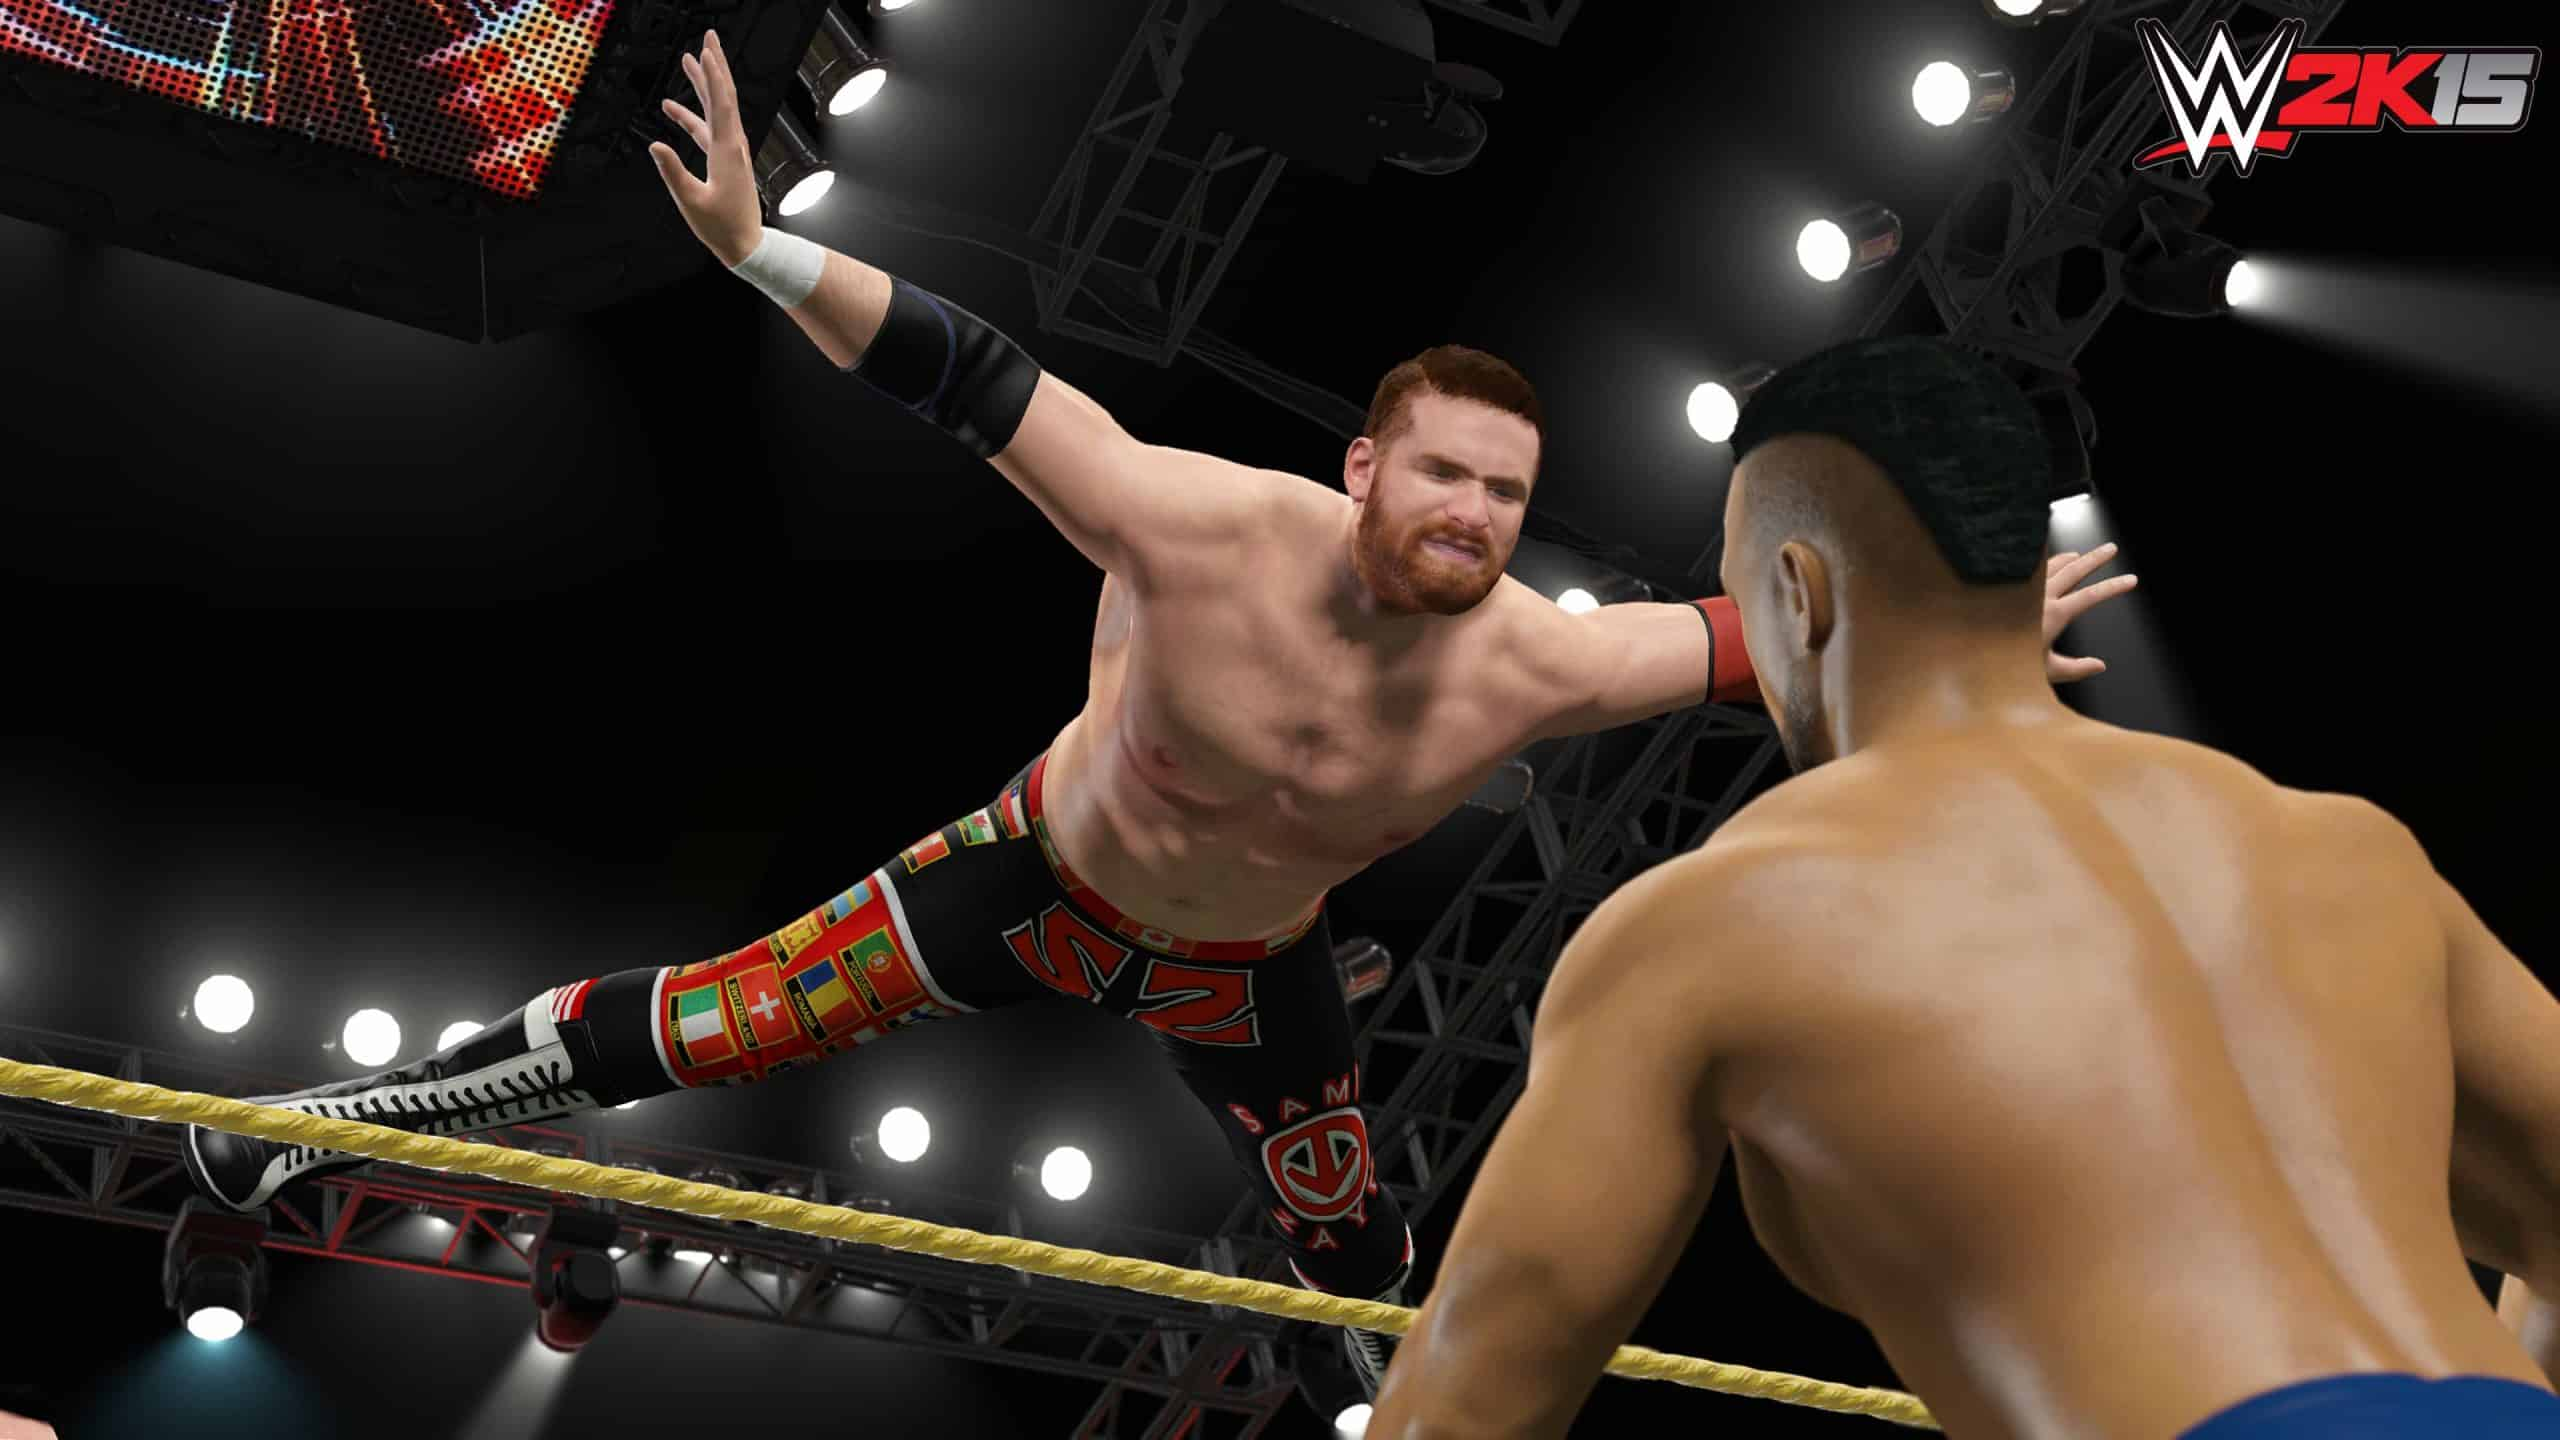 Wwe 2k15 download telecharger